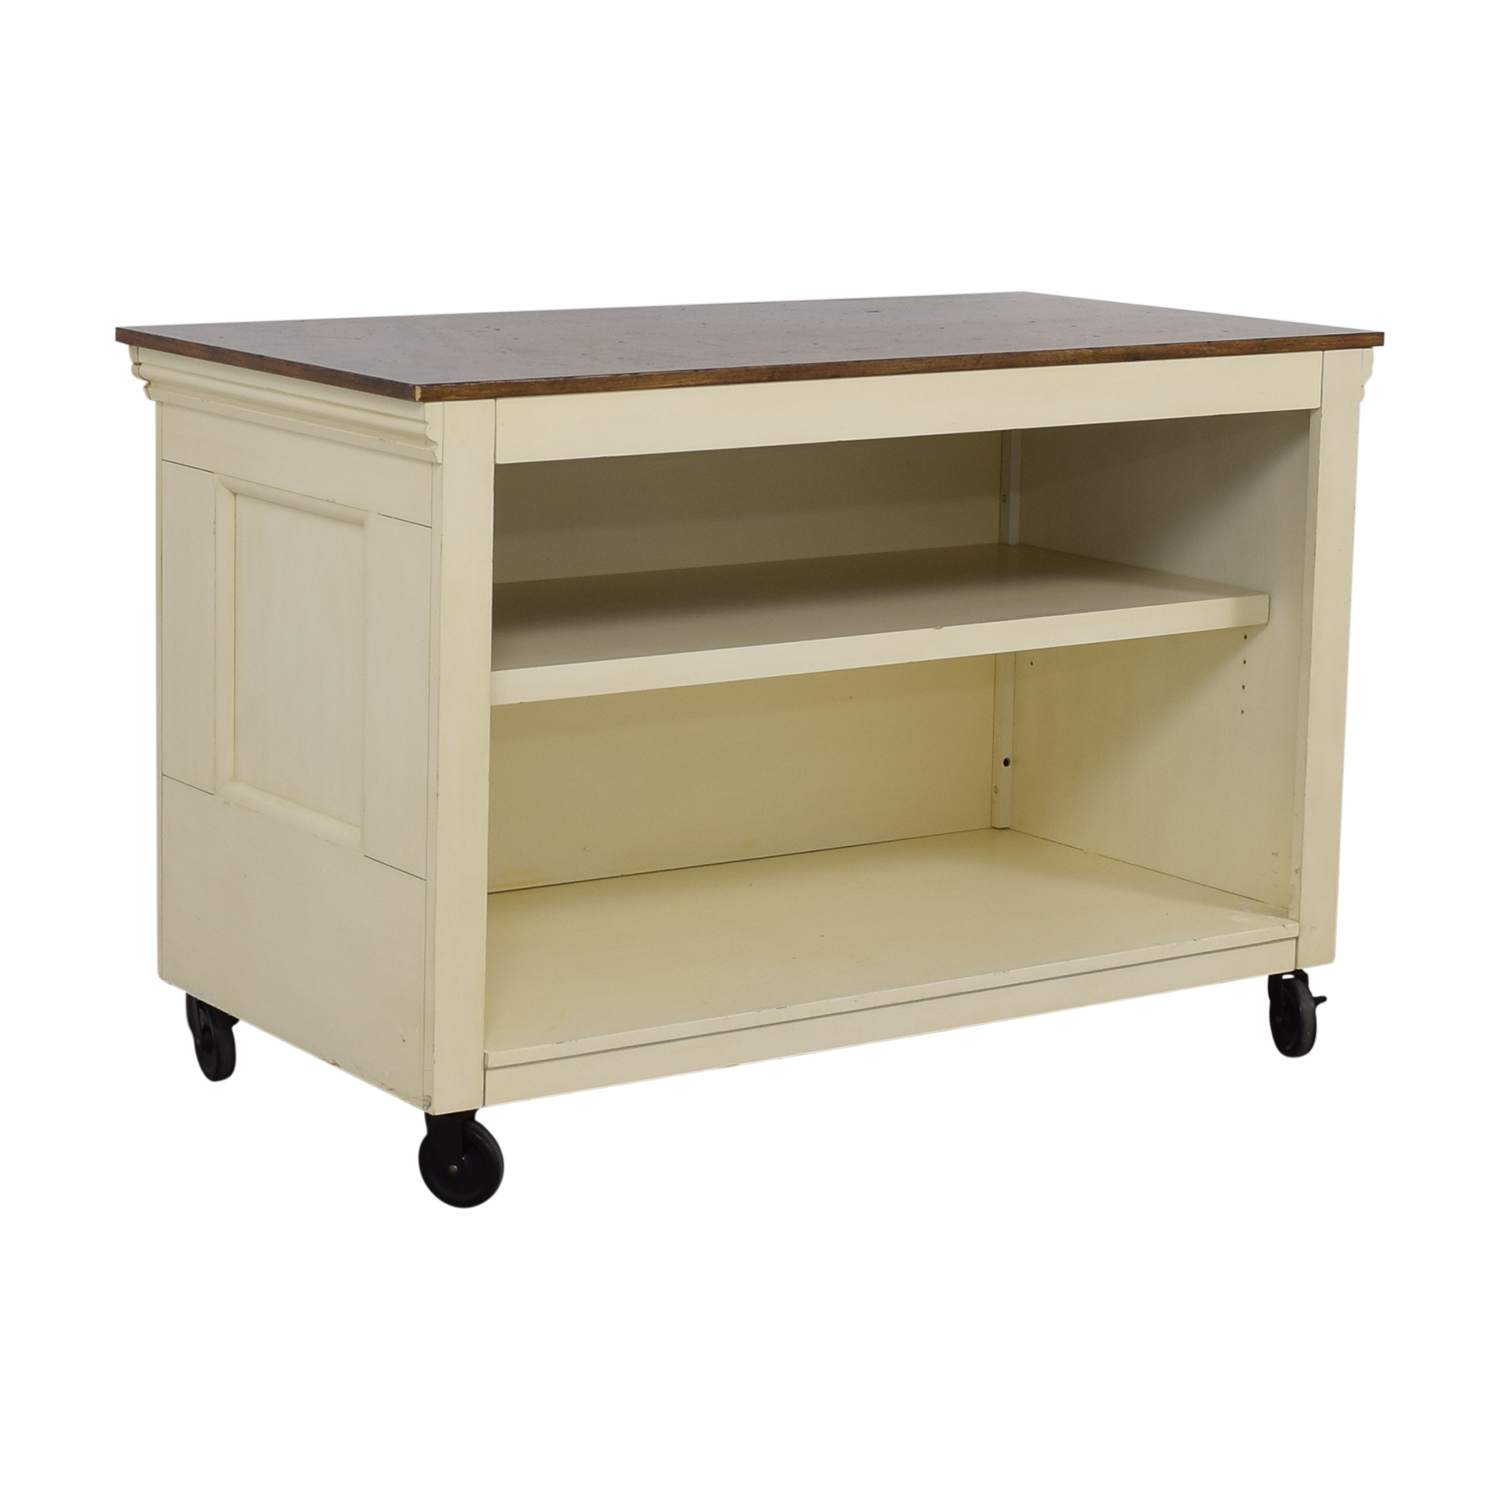 Pottery Barn Wood Top White Buffet / Utility Tables